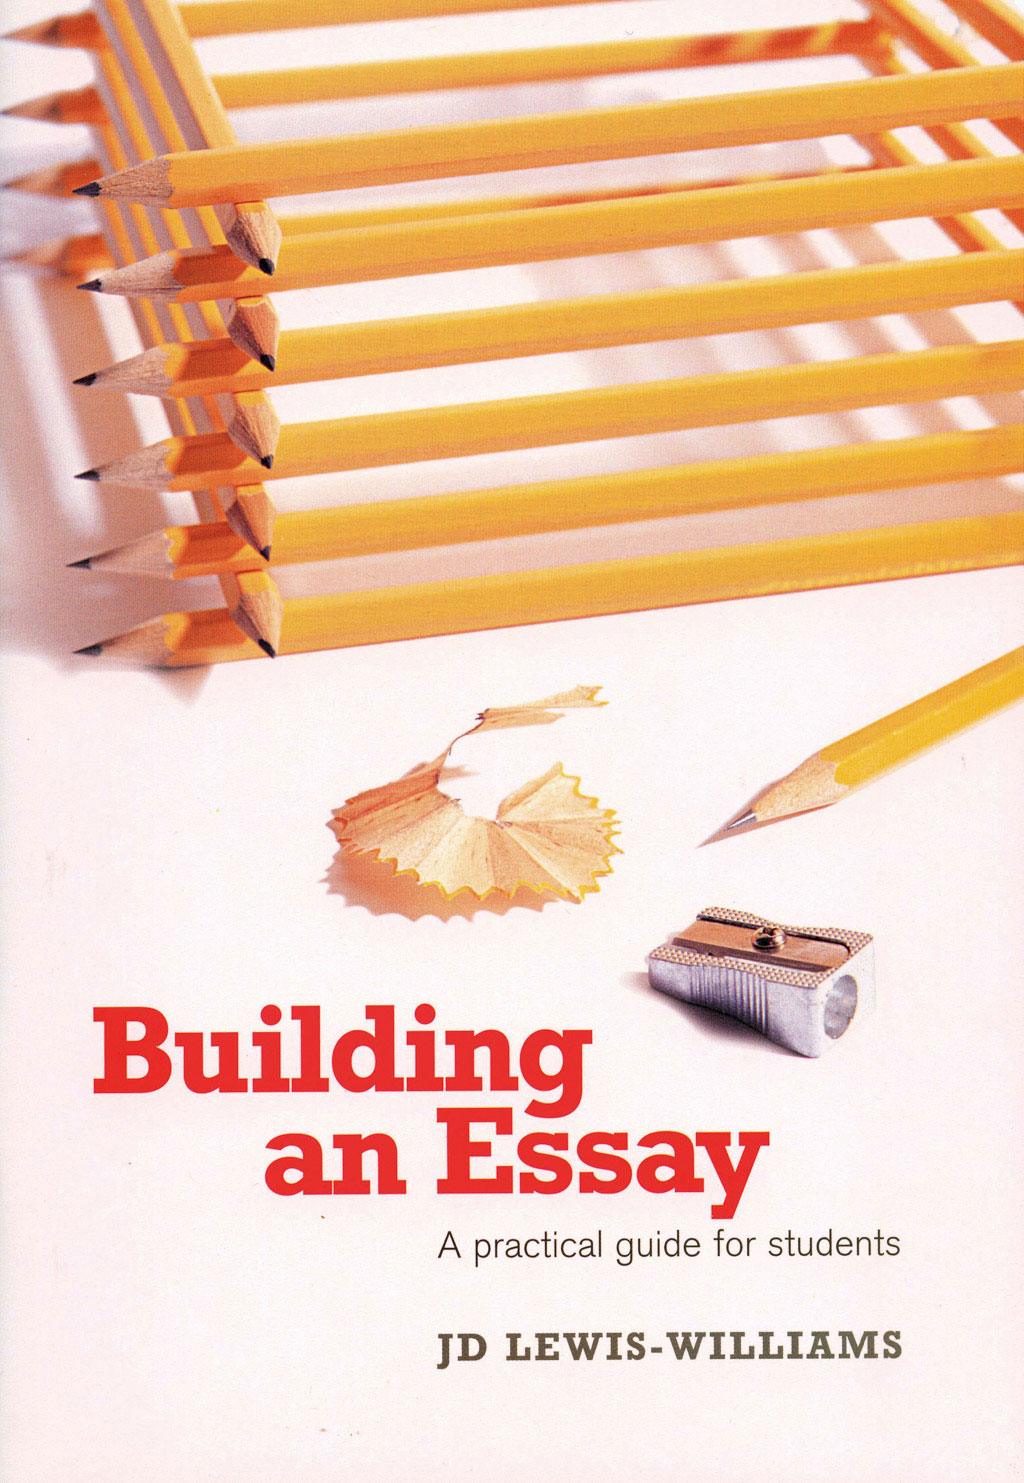 BUILDING AN ESSAY: A practical guide for students